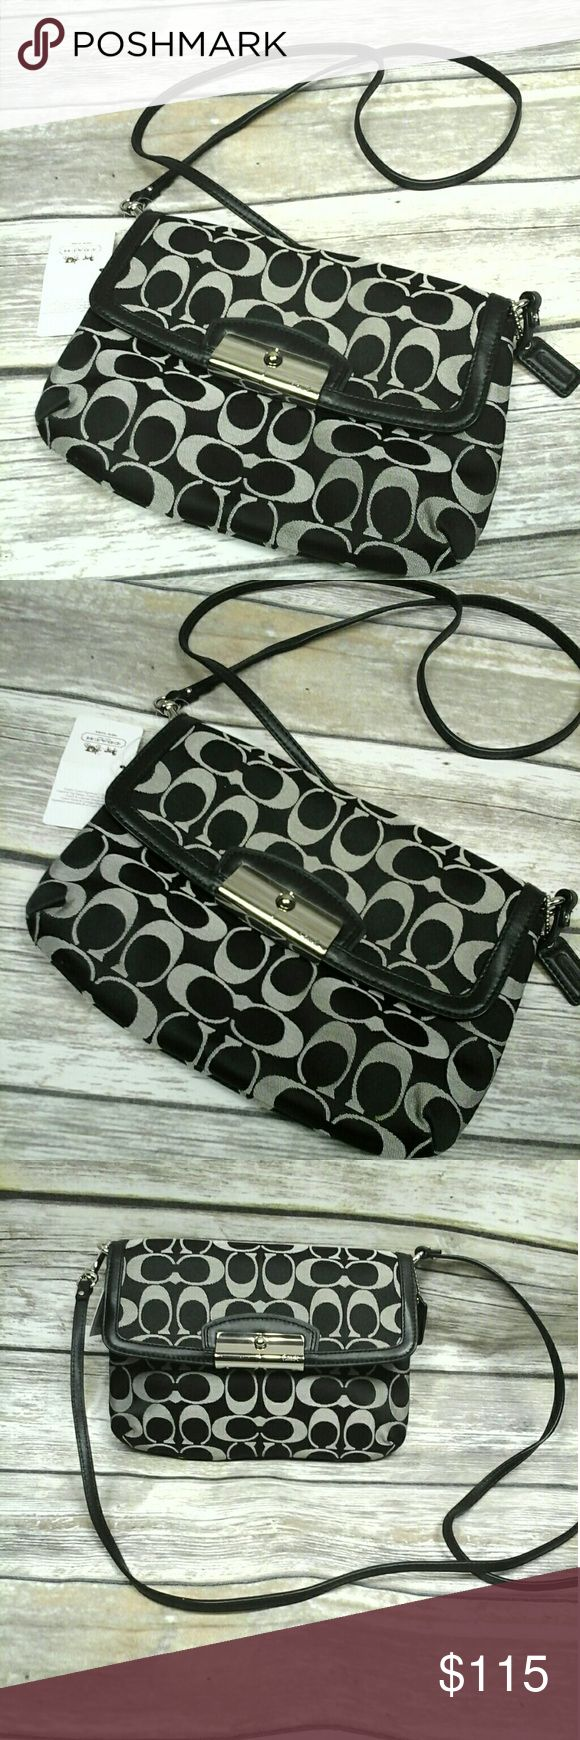 """COACH KRISTIN SIGNATURE SATEEN FLAP CROSSBODY Signature sateen fabric with leather trim Inside multifunction pockets Flap closure, fabric lining Longer strap for shoulder or crossbody wear 9"""" (L) x 6 1/4"""" (H) x 1 1/2"""" (W) Black/Silver This is a signature product Coach Bags Crossbody Bags"""